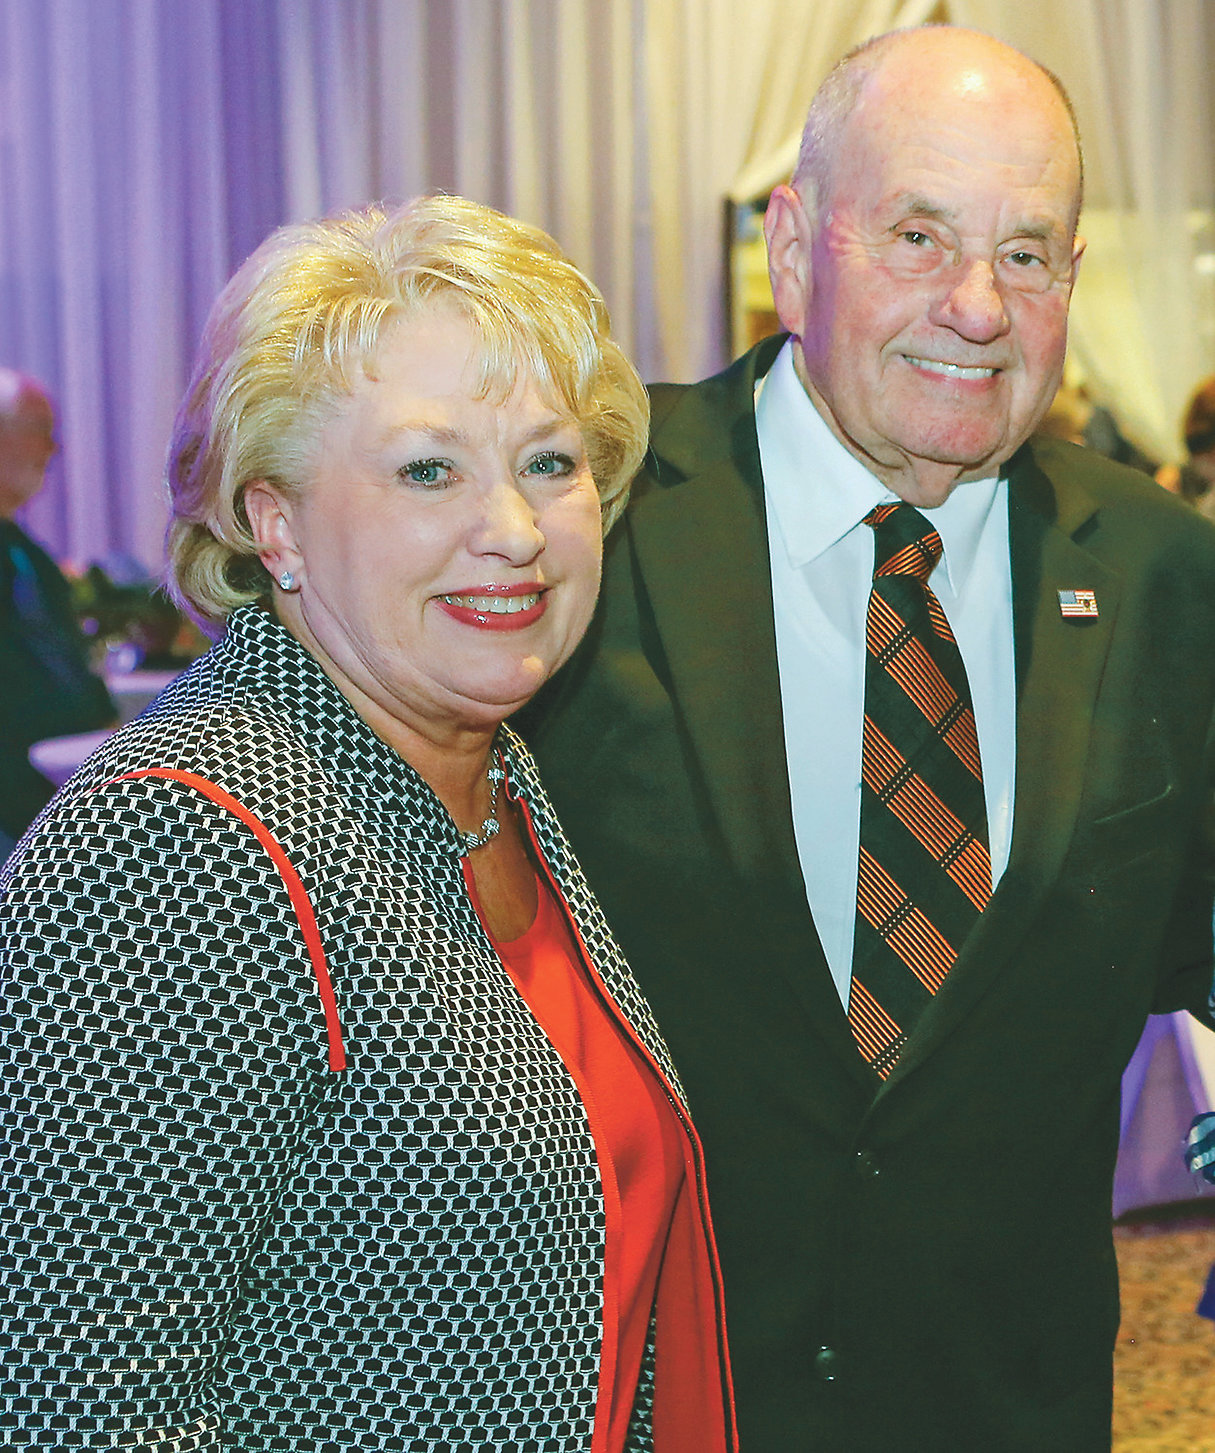 CLEVELAND MAYOR Tom Rowland and first lady Sandra, left, pose for a quick photo at a reception held in his honor at the Museum Center in August. The two-hour event drew a huge crowd of friends and supporters who were offering their best wishes in the Cleveland mayor's retirement from public office.